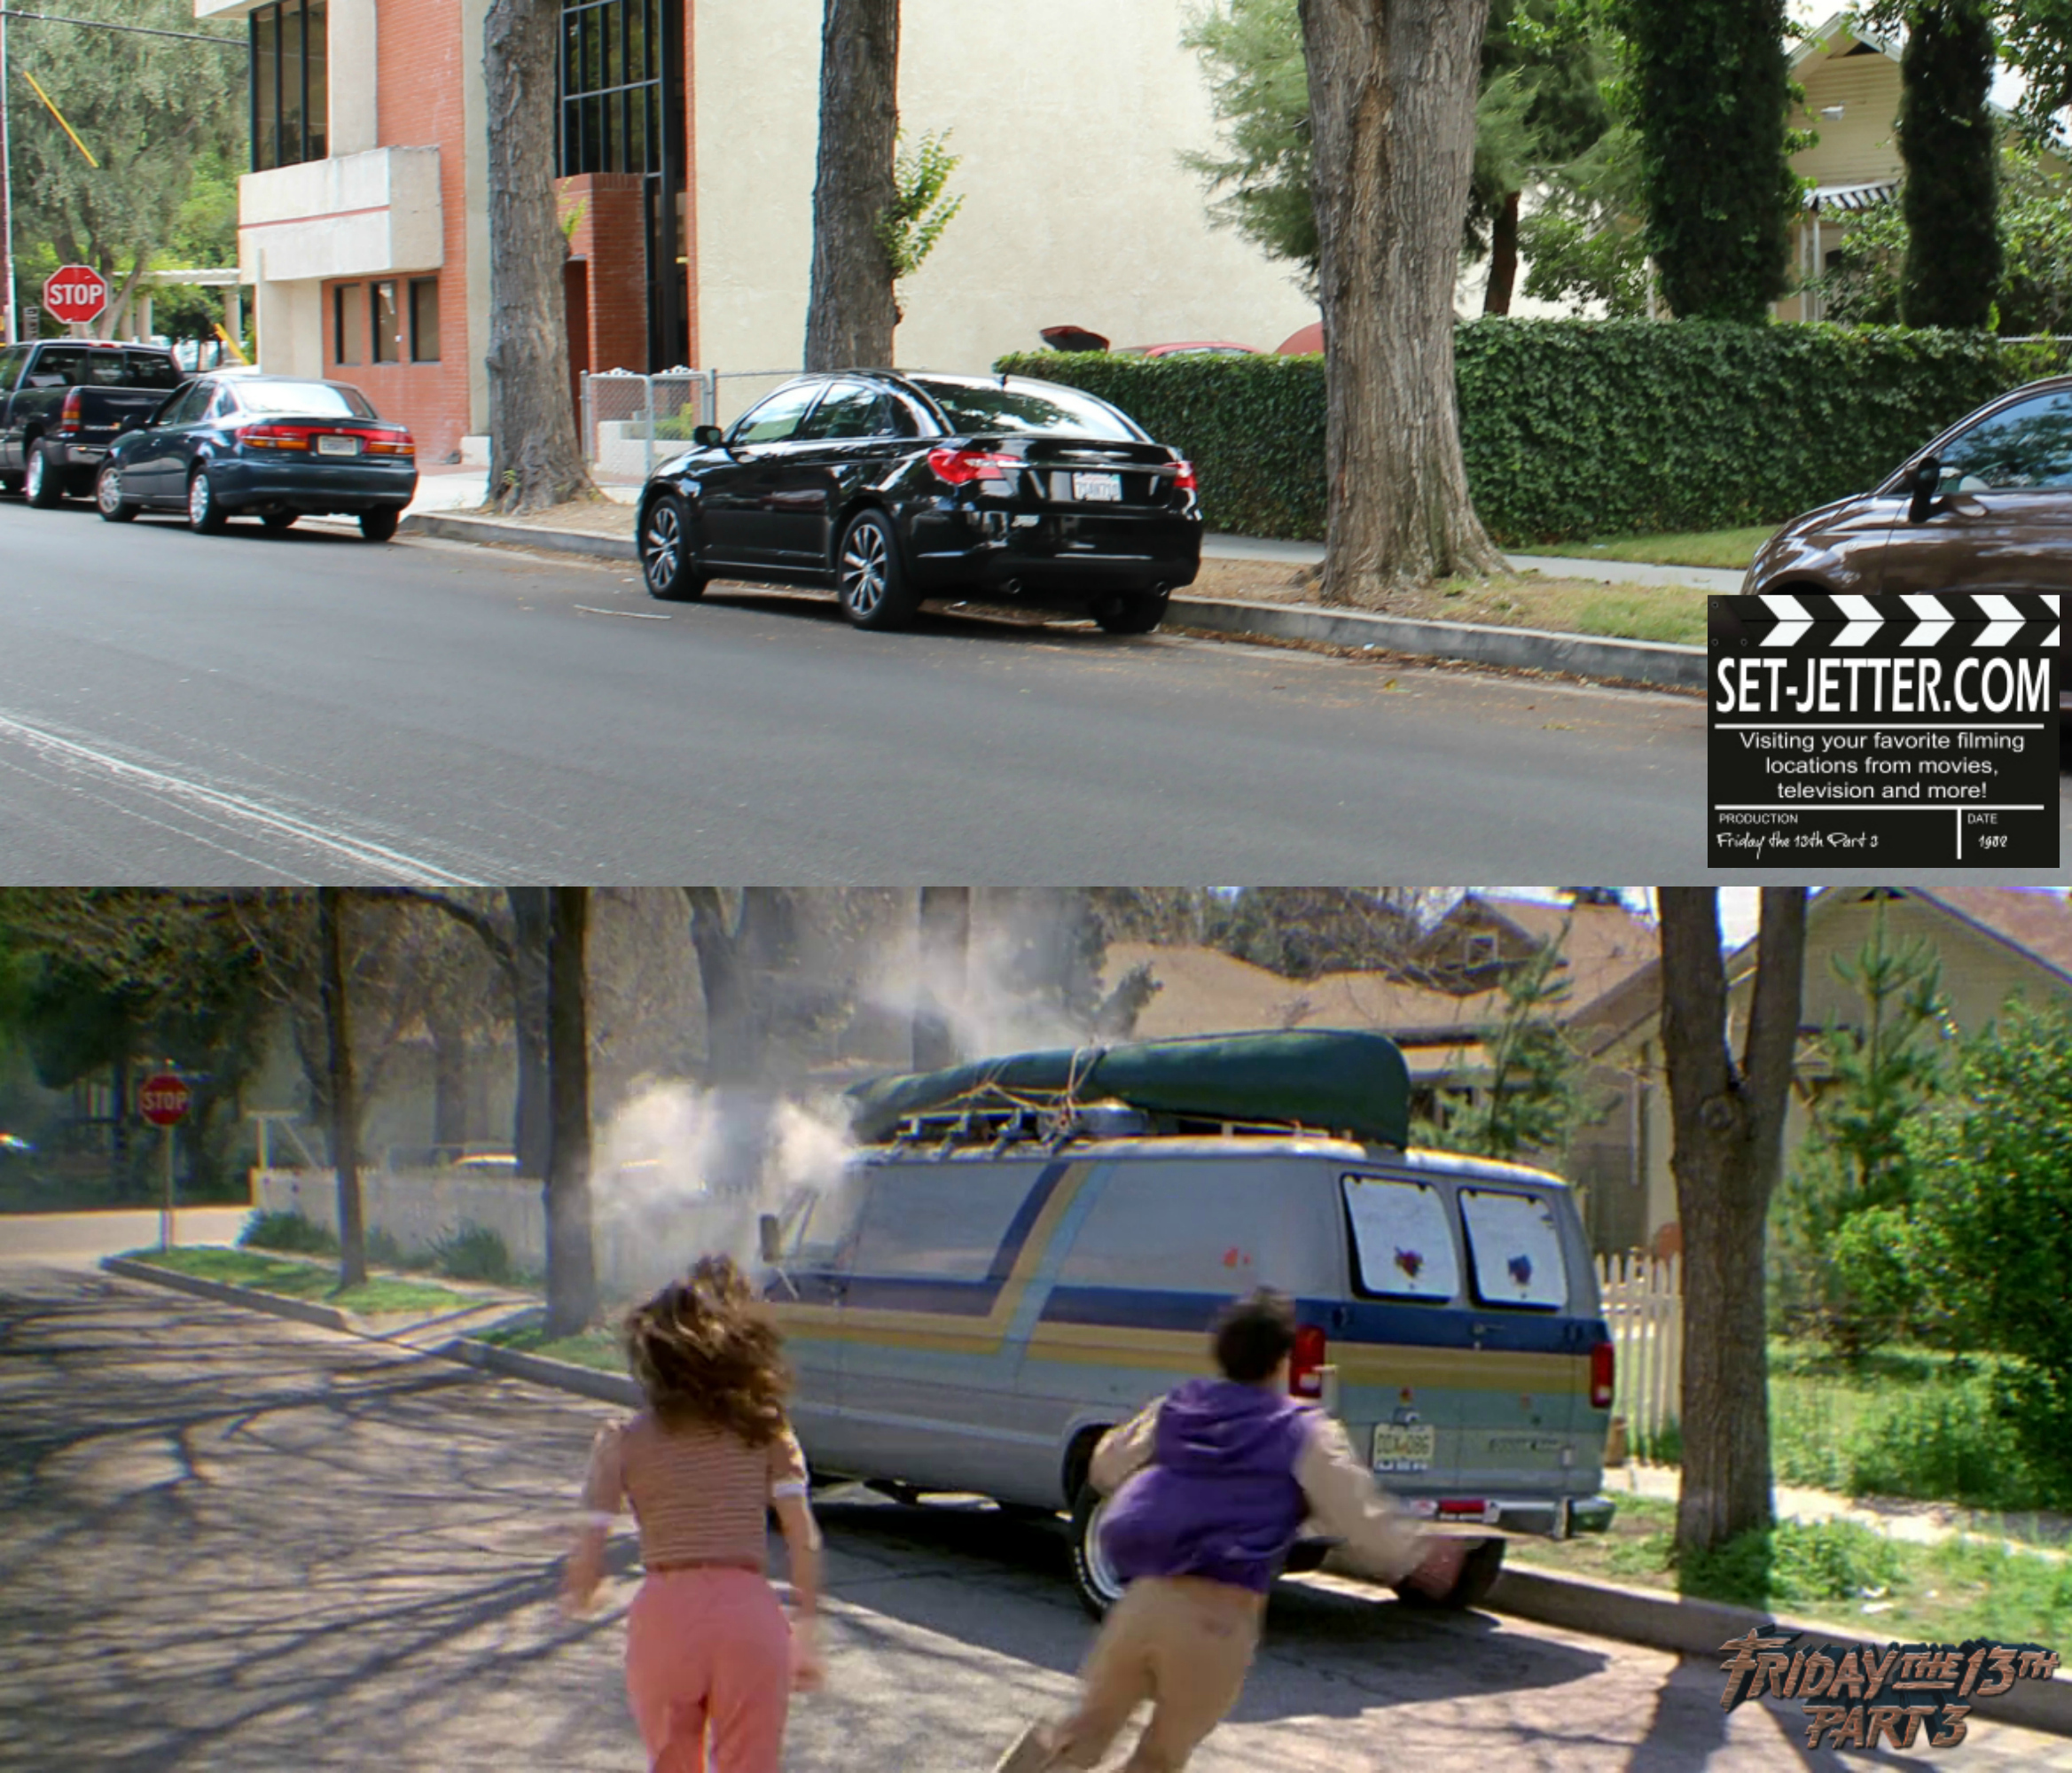 Friday the 13th Part 3 comparison 36.jpg